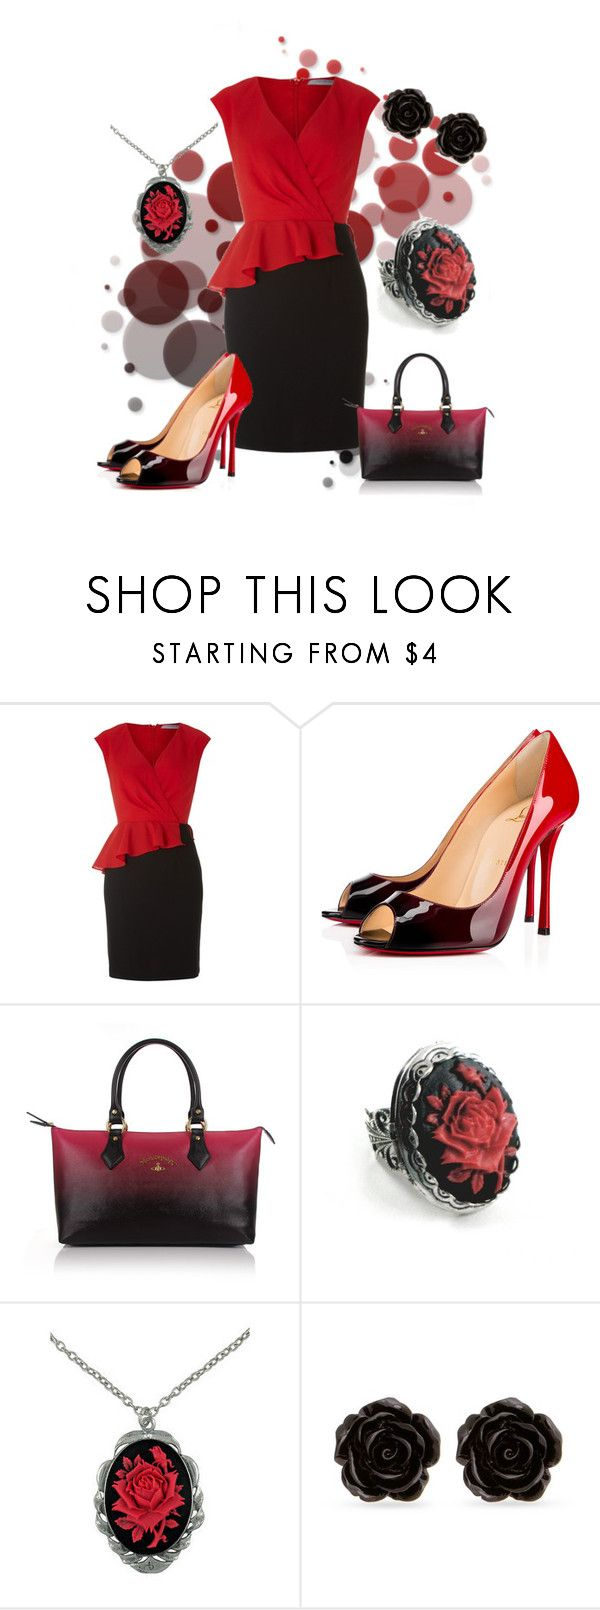 """""""Untitled #199"""" by saskatoonmommy ❤ liked on Polyvore featuring Andrew Marc, Christian Louboutin, Vivienne Westwood, Cameo and Erica Lyons"""